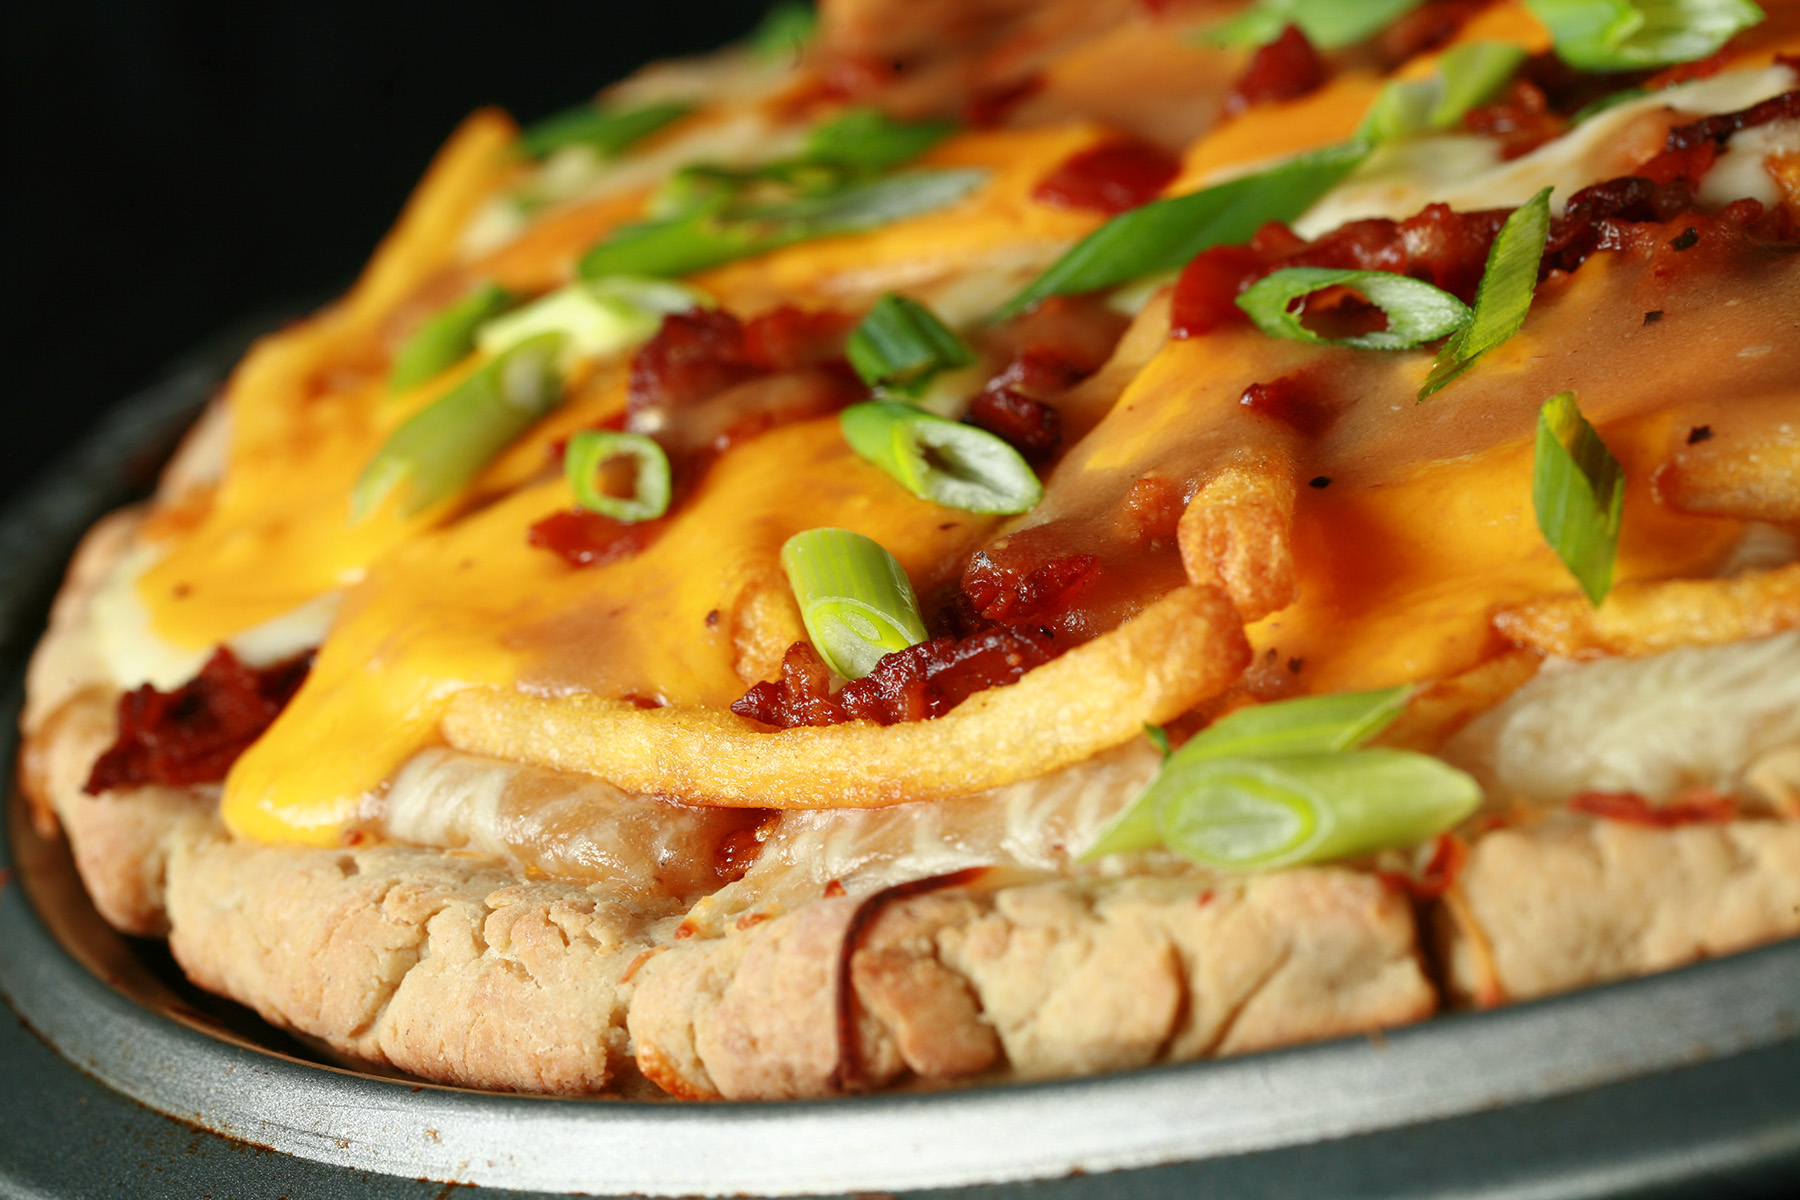 A close up view of a gluten-free poutine pizza - A pizza crust topped with gravy, fries, cheese curds, chredded cheese, bacon, and green onions!